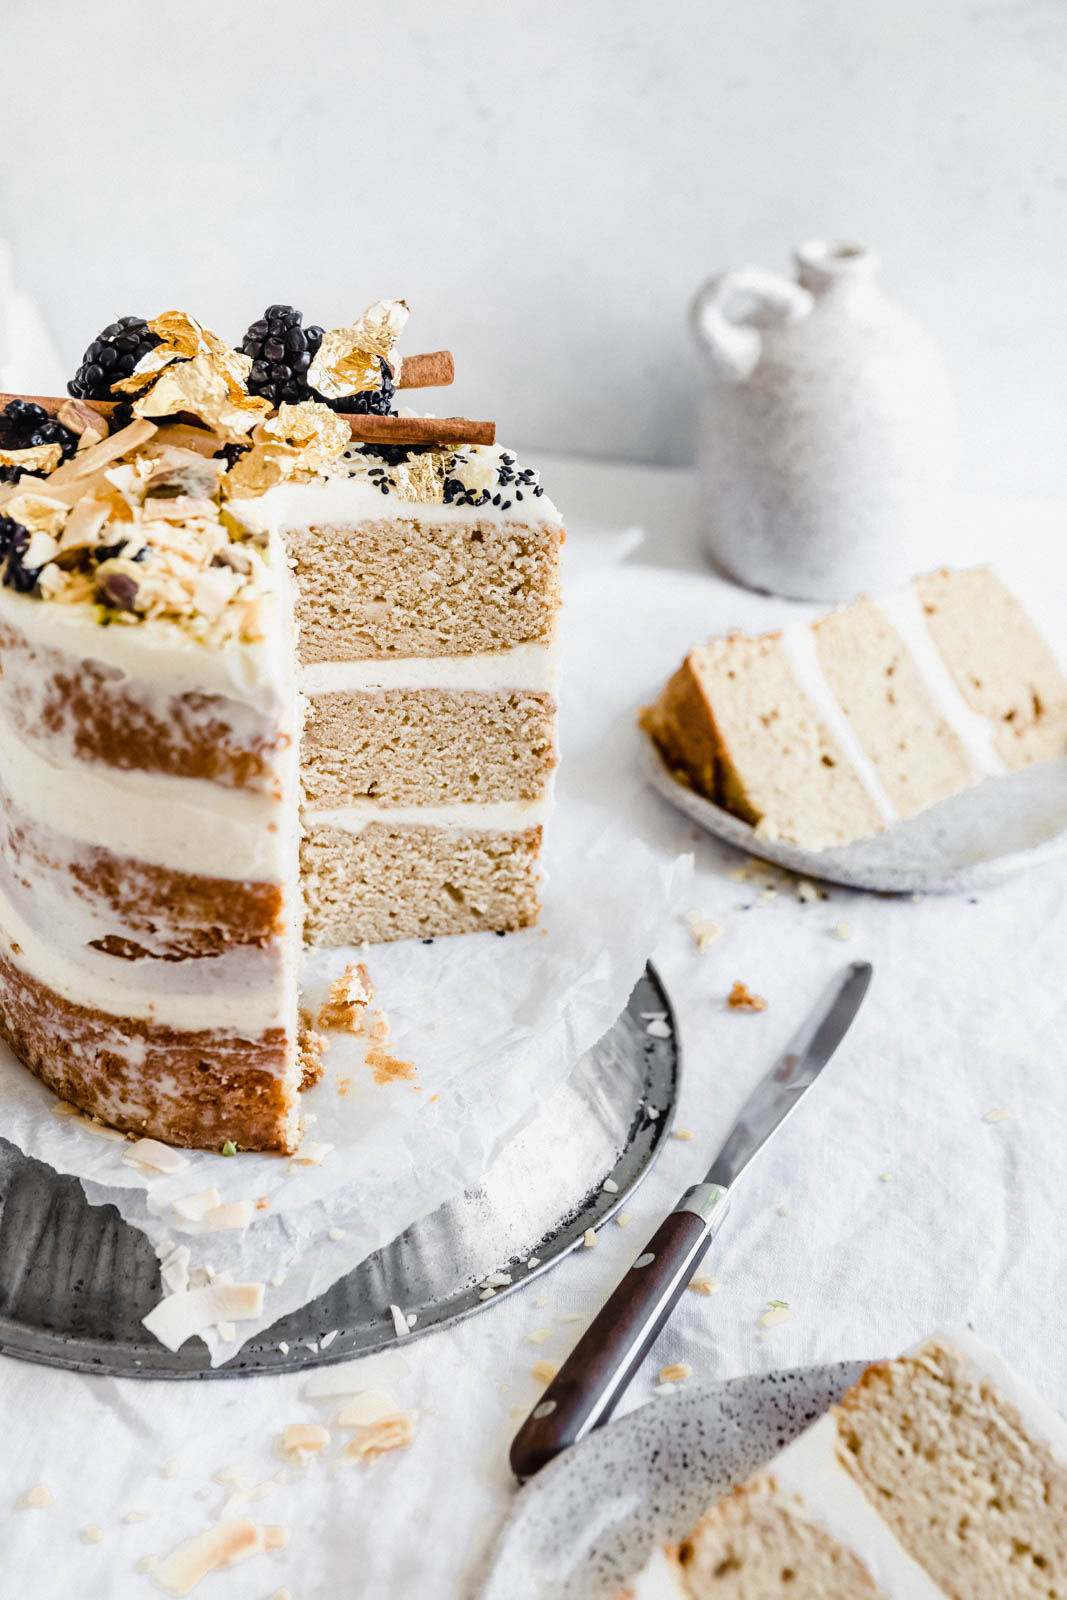 Like chai tea in a cake, this Chai Spice Cake with Vanilla Cream Cheese Frosting is delicately spiced with cinnamon, cardamom, and ginger. YUMMA.